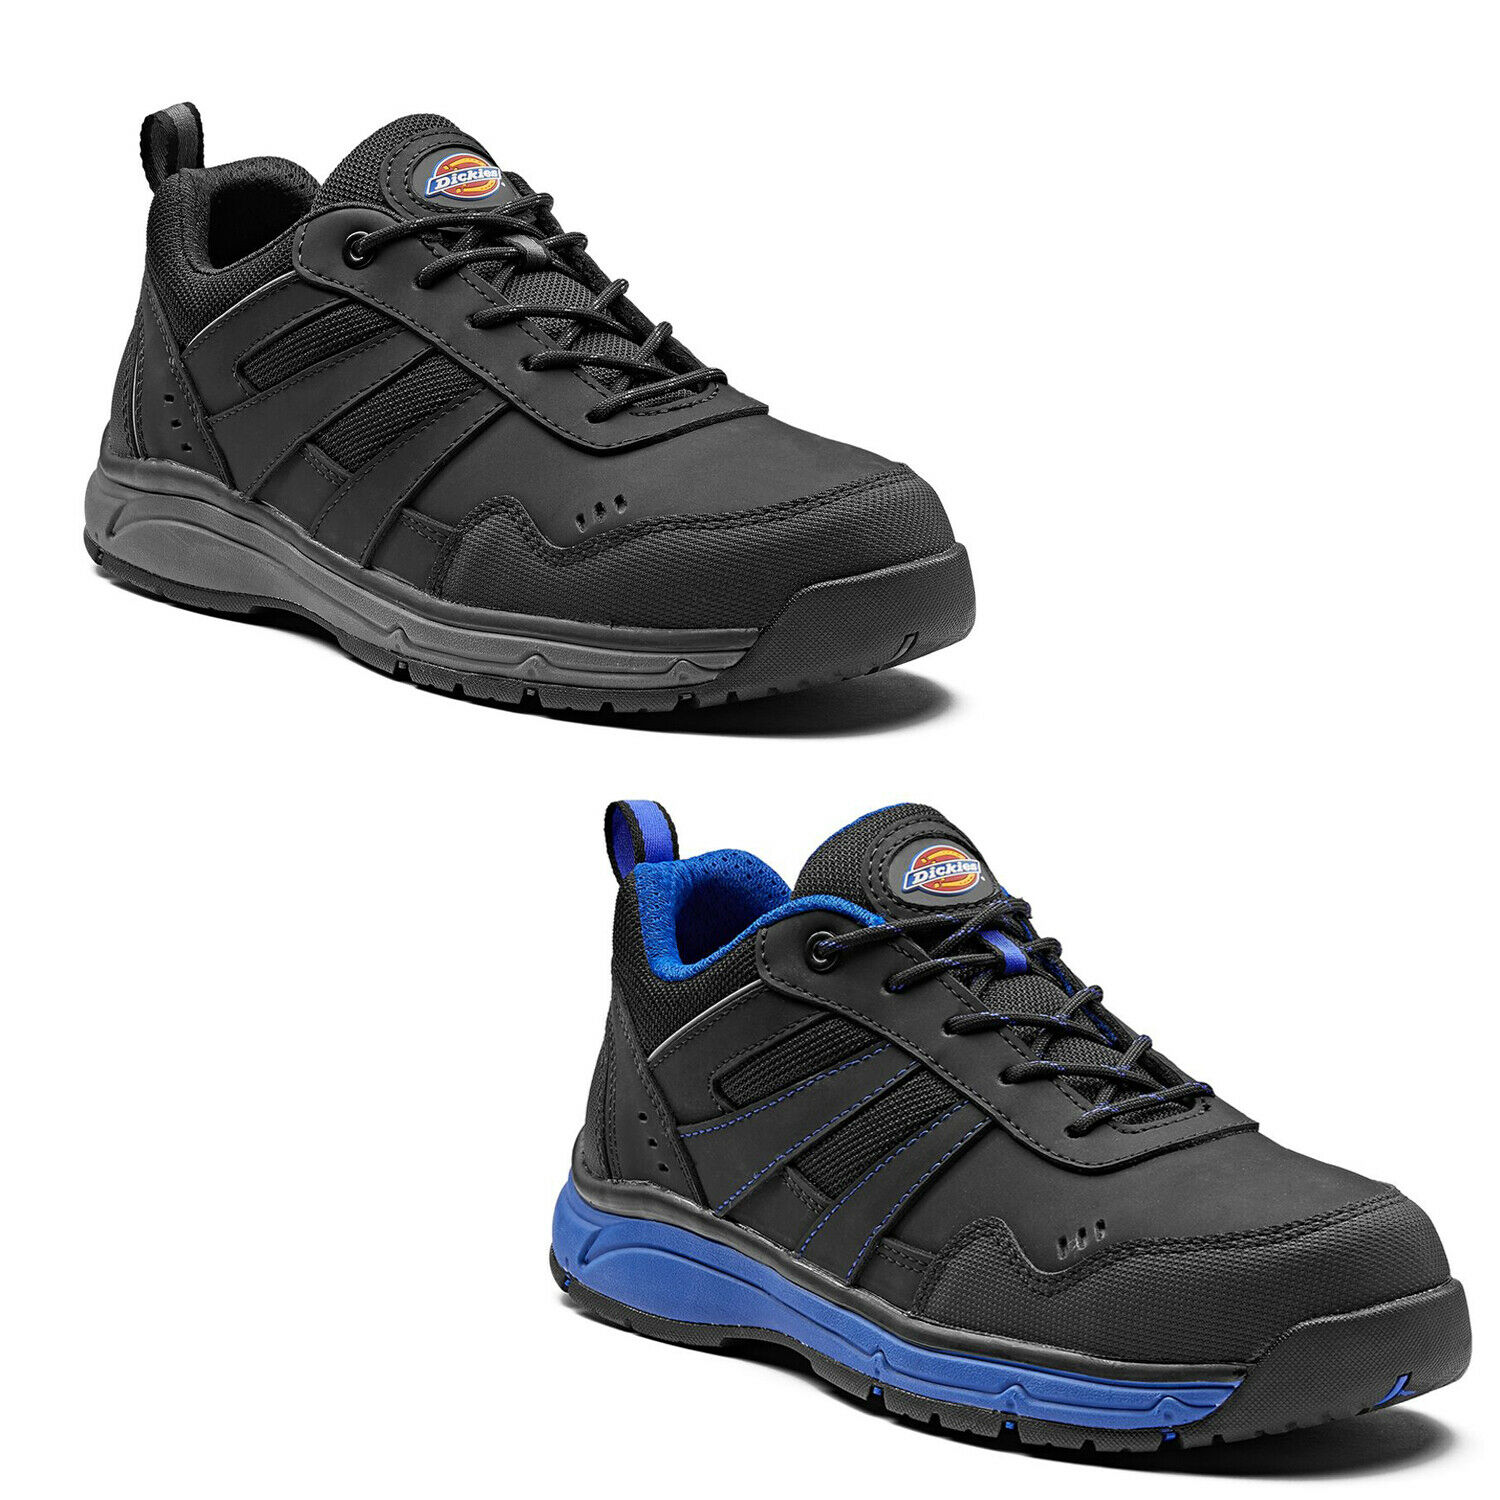 Dickies Emerson Safety Work Trainer shoes (Sizes 6-14) Men's